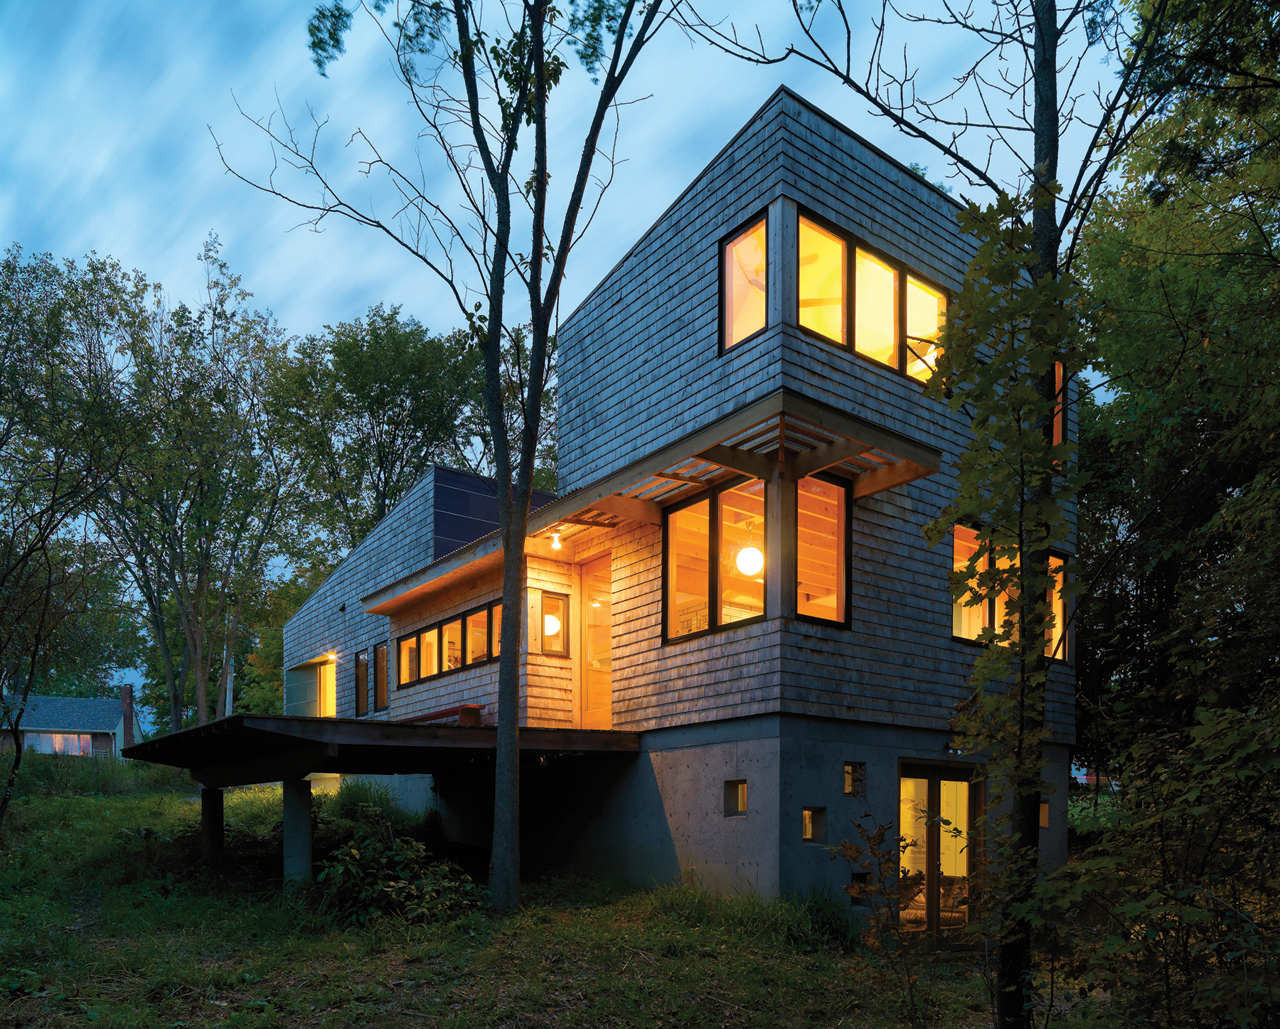 Nature Preserve House / John McLeod Architect, © Susan Teare Photography